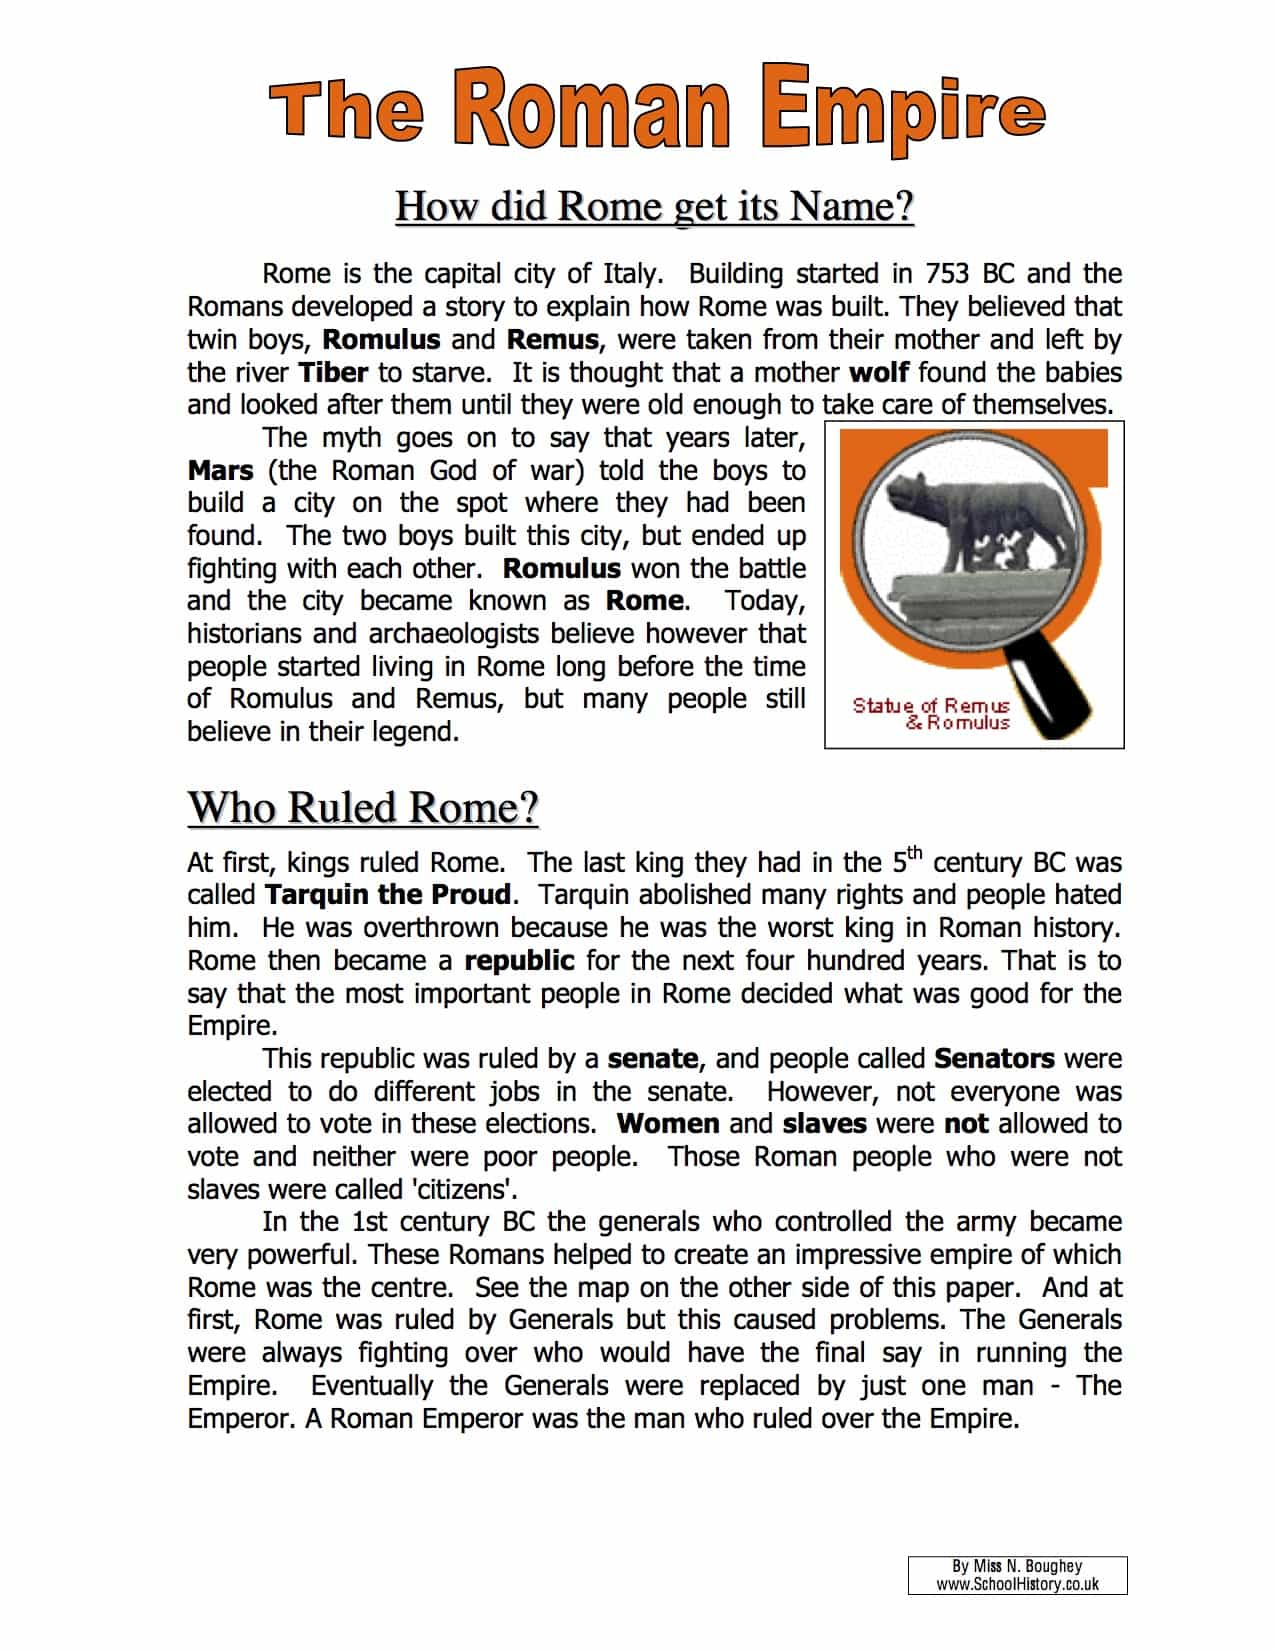 The Roman Empire Name Facts & Information Worksheet